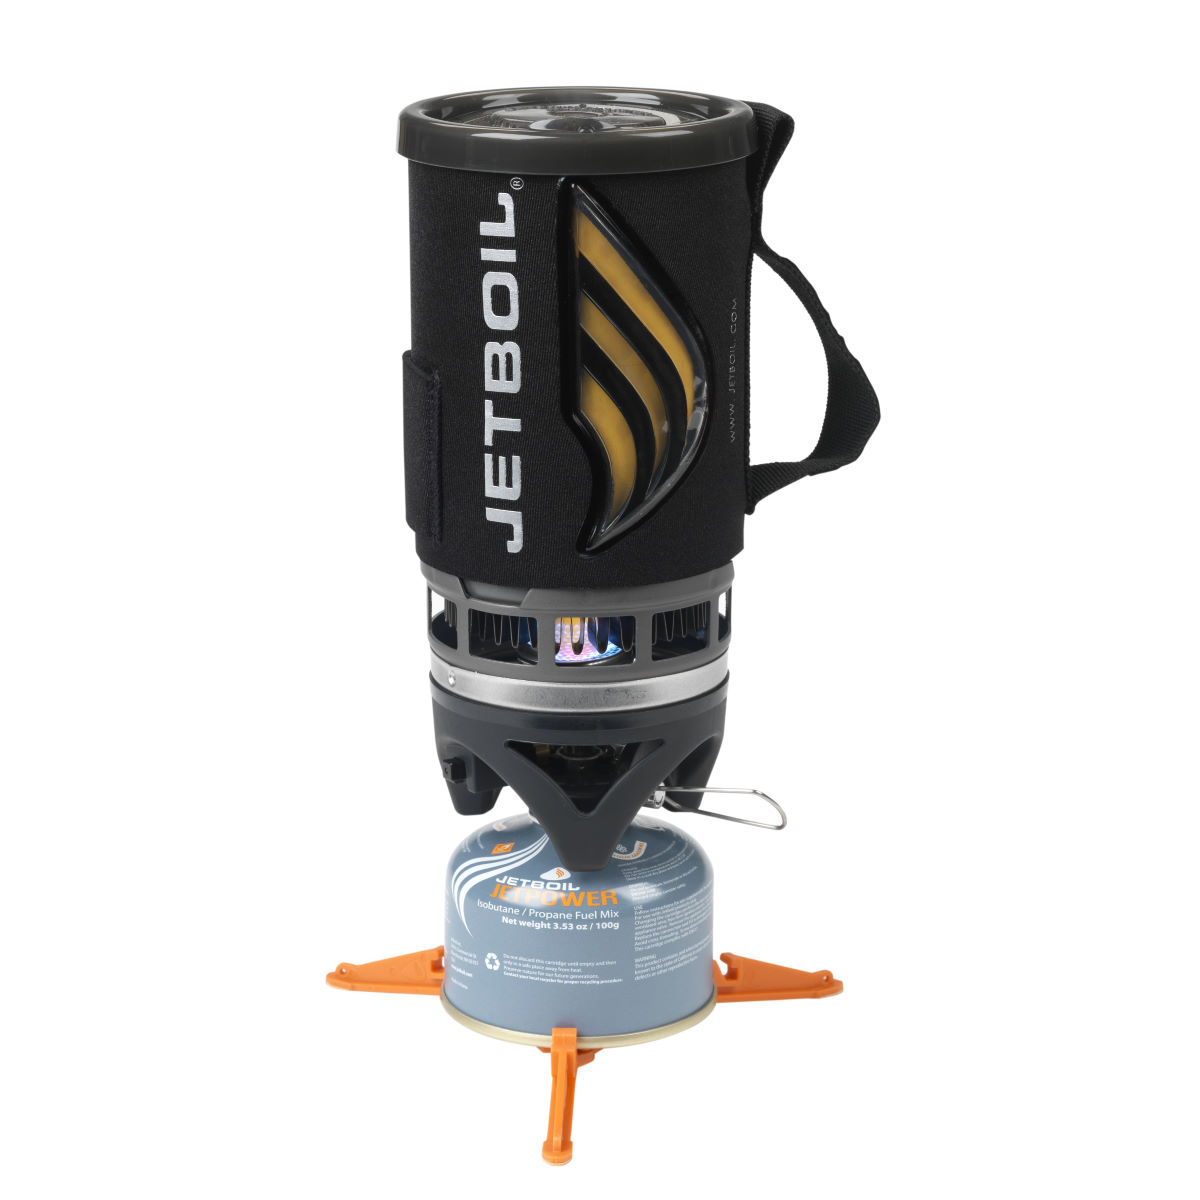 Réchaud Jetboil Flash (carbone) - Taille unique Carbone